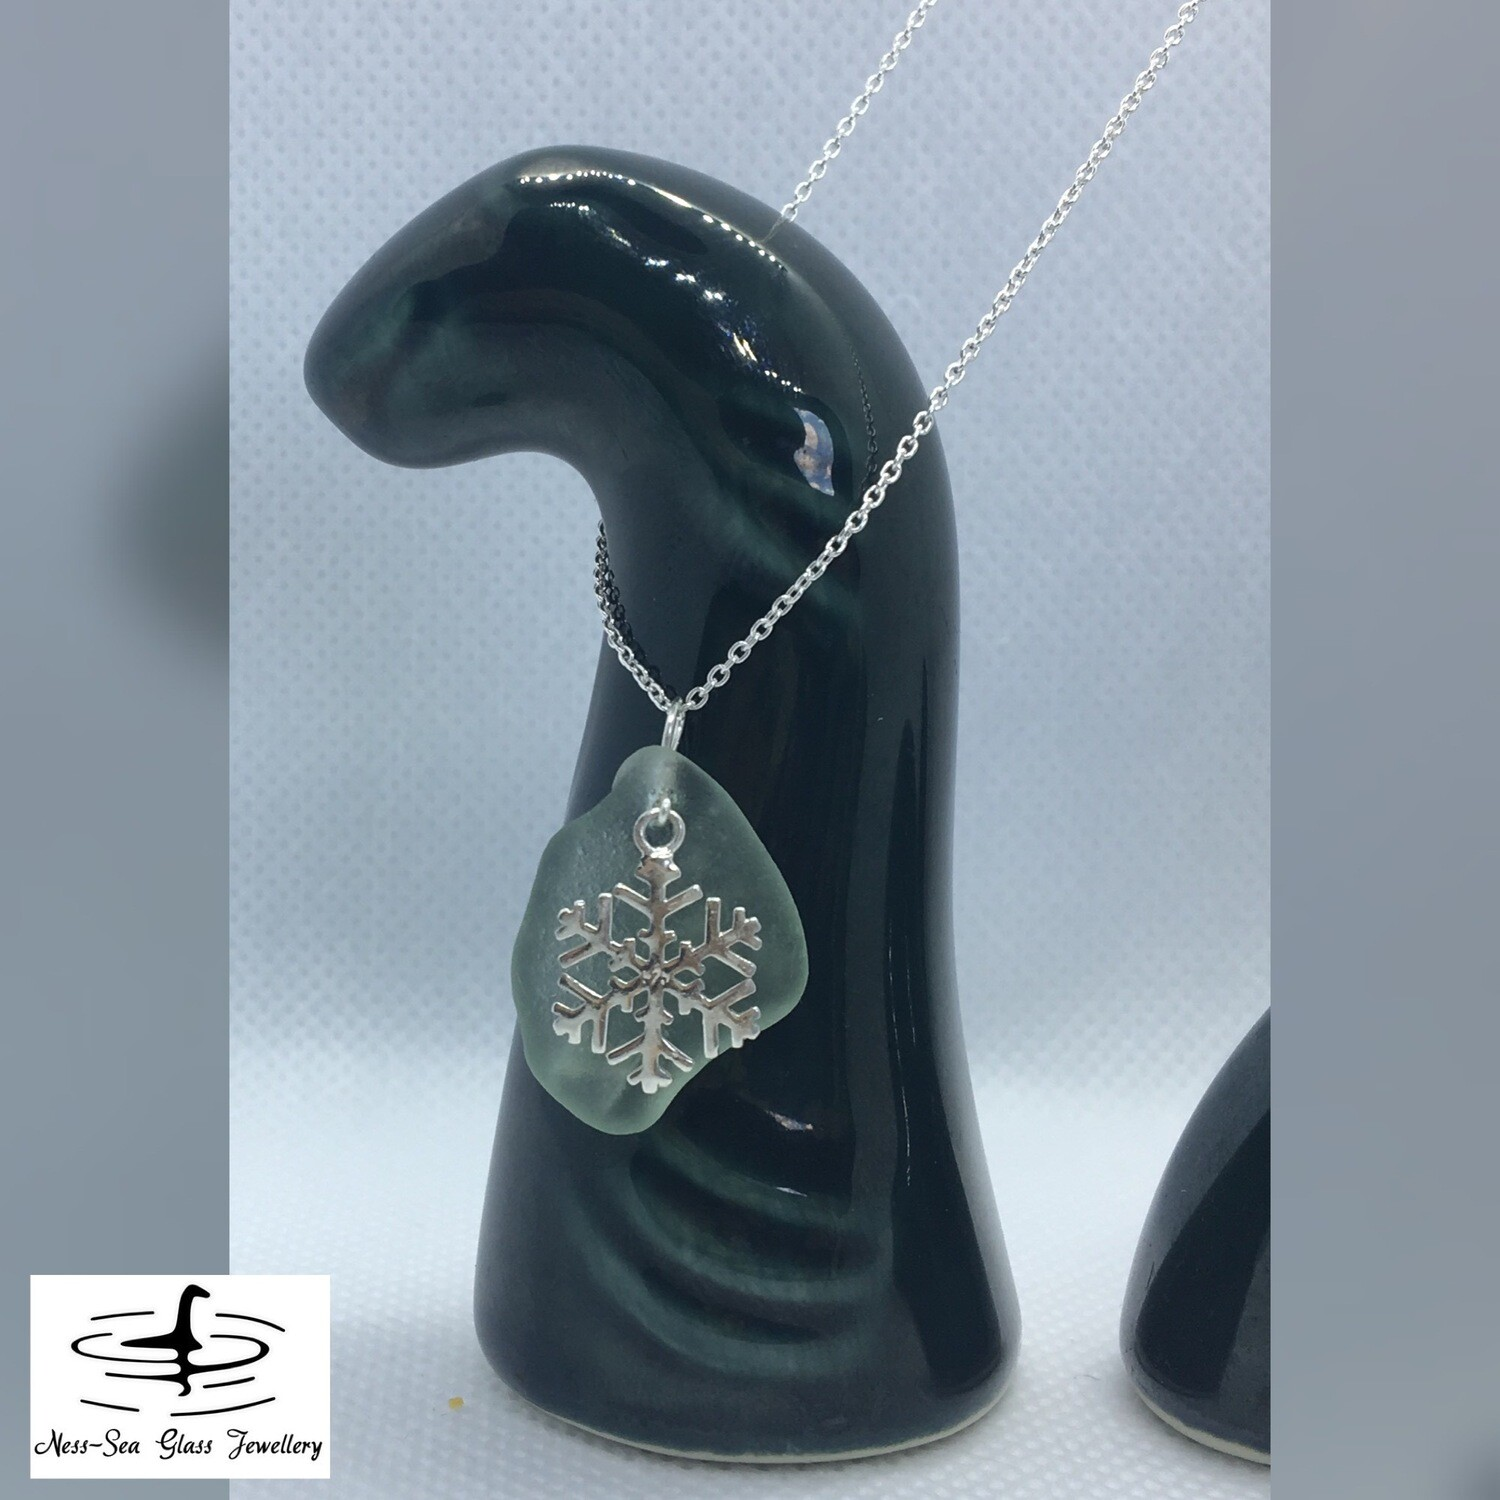 Blue Loch Ness Sea Glass Necklace with Sterling Silver Snowflake Detail and Fine Sterling Silver Chain